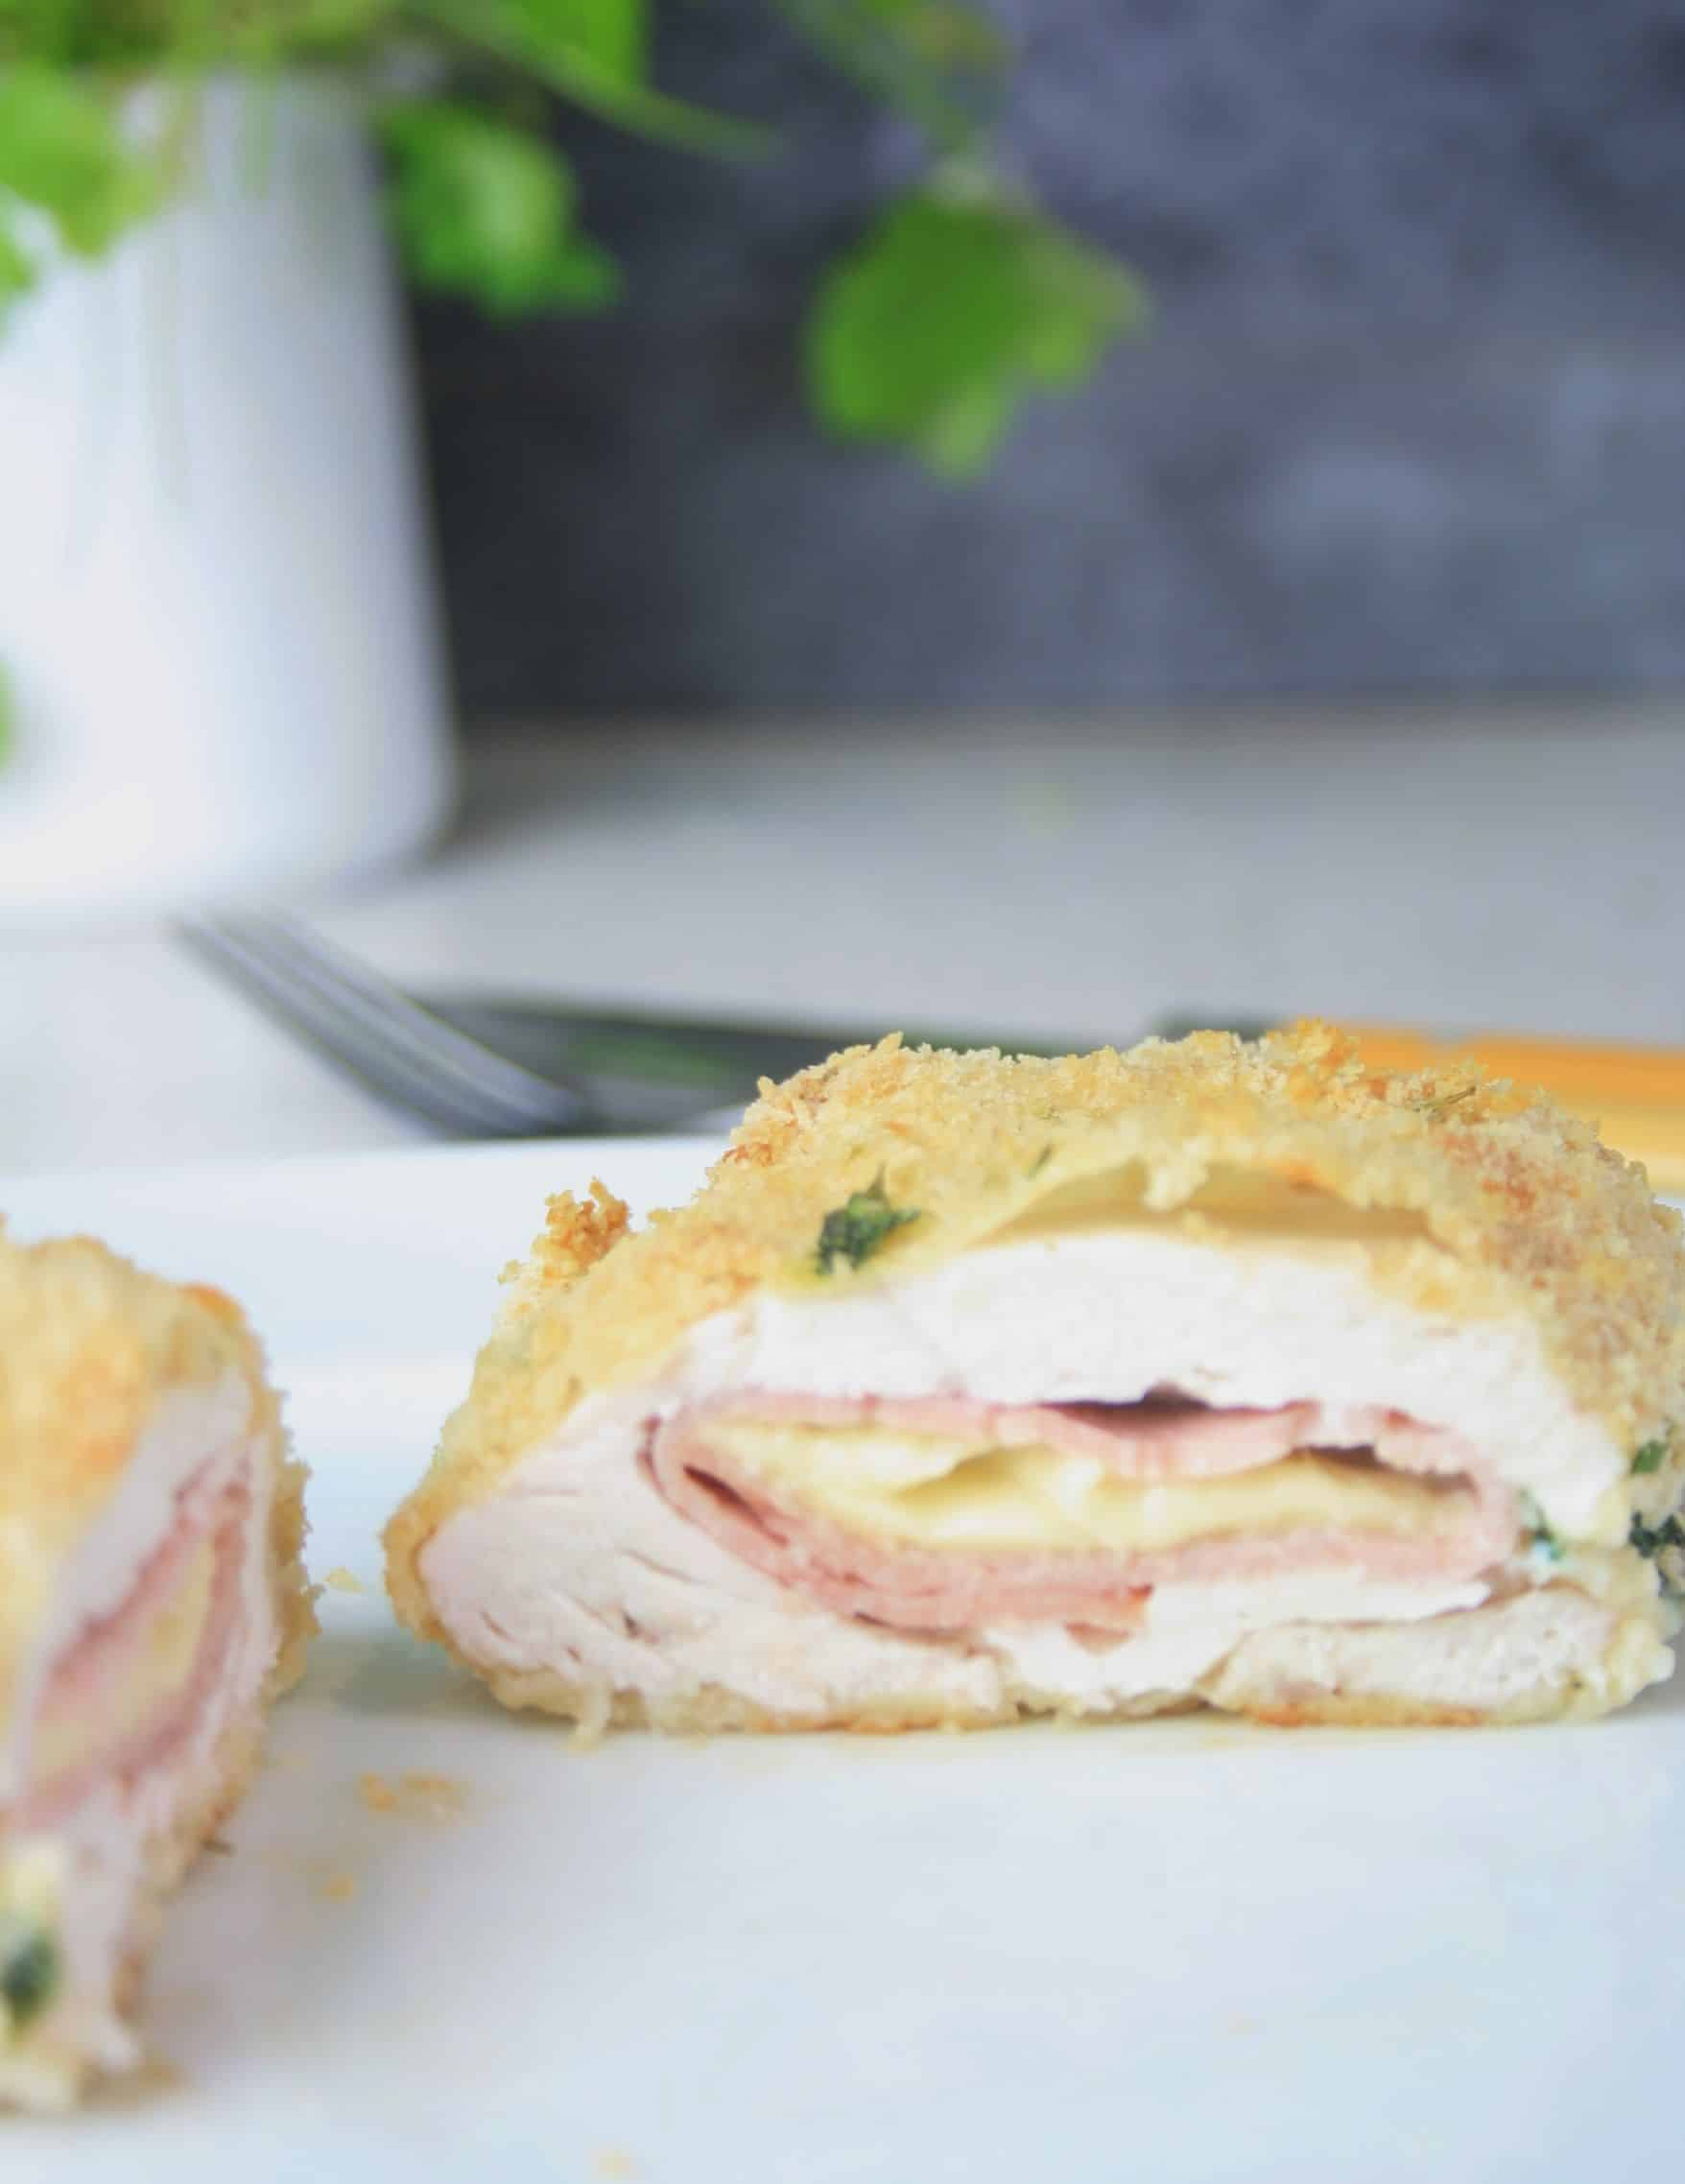 slice of cooked chicken with ham and cheese